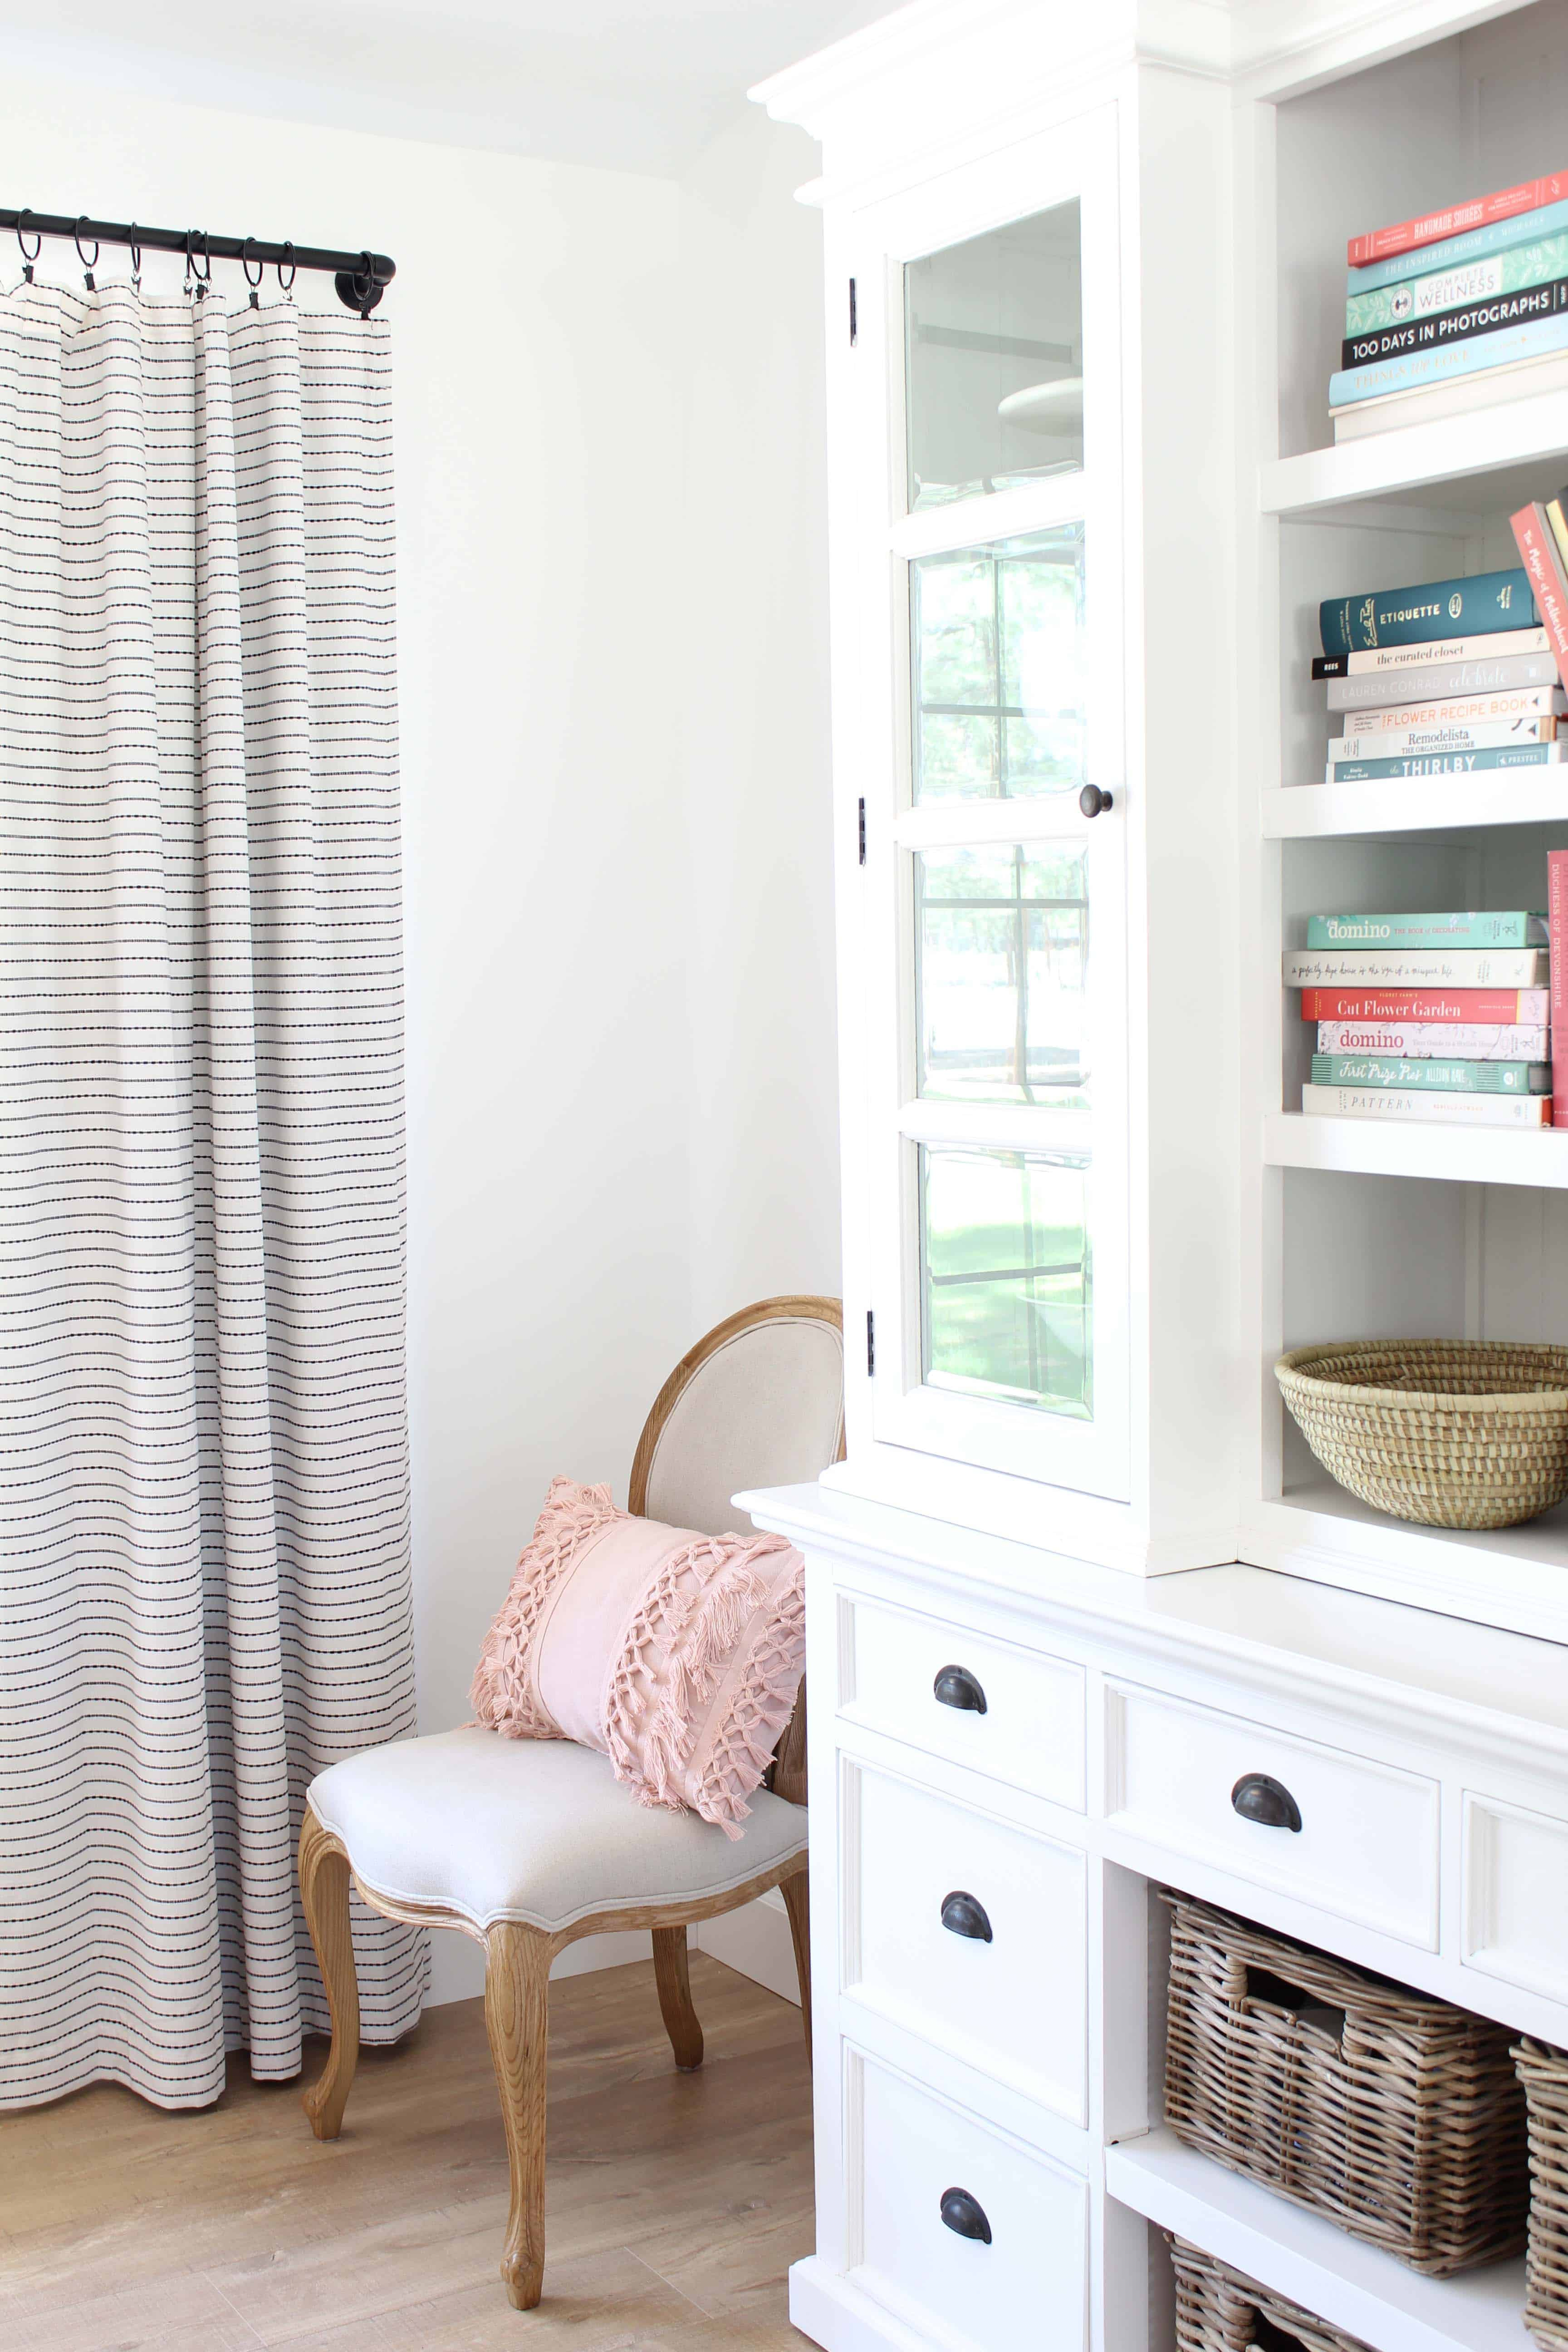 novo solo halifax library hutch, pottery barn french chair, stone and beam striped curtains